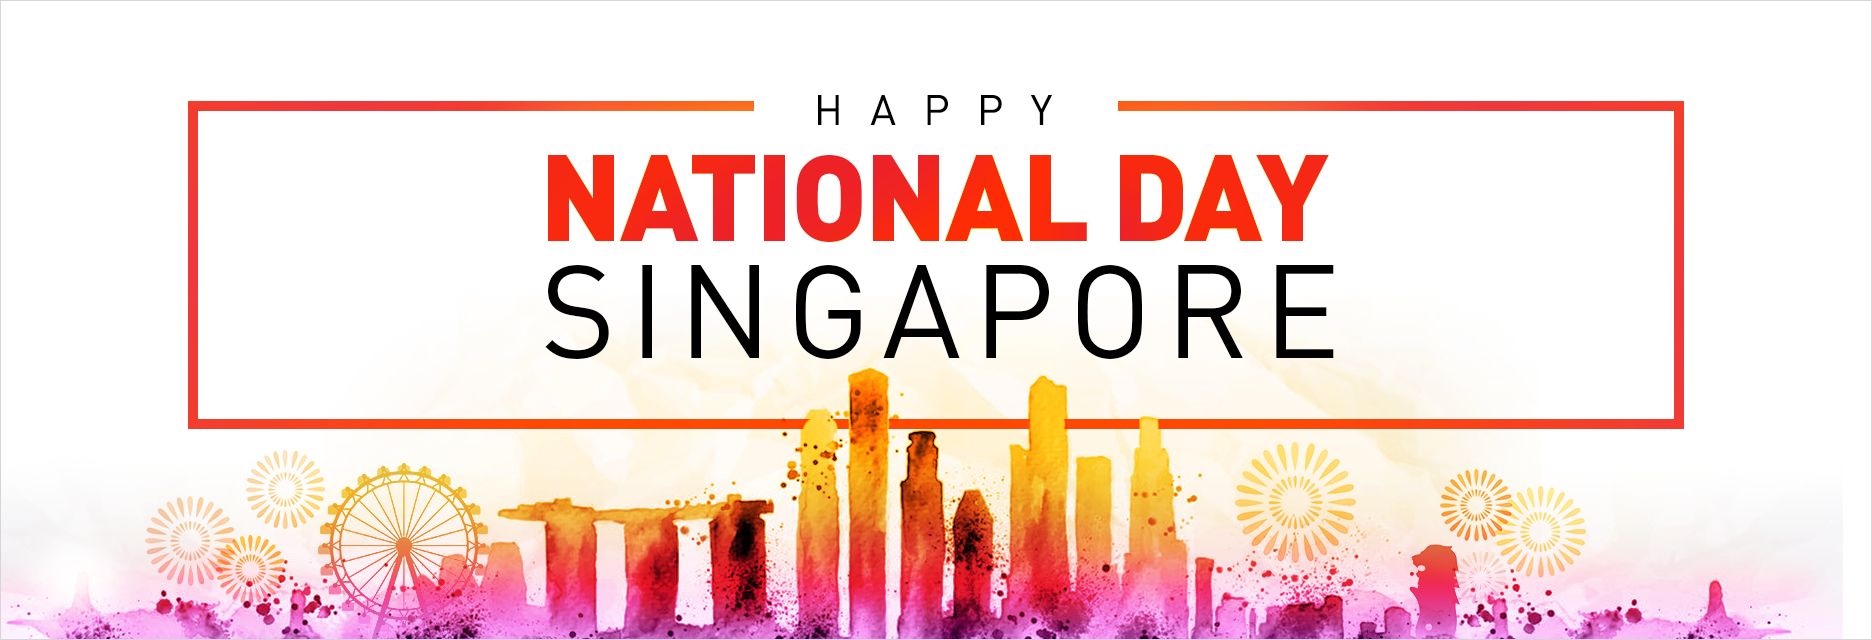 LoopMe Singapore | Singapore's National Day